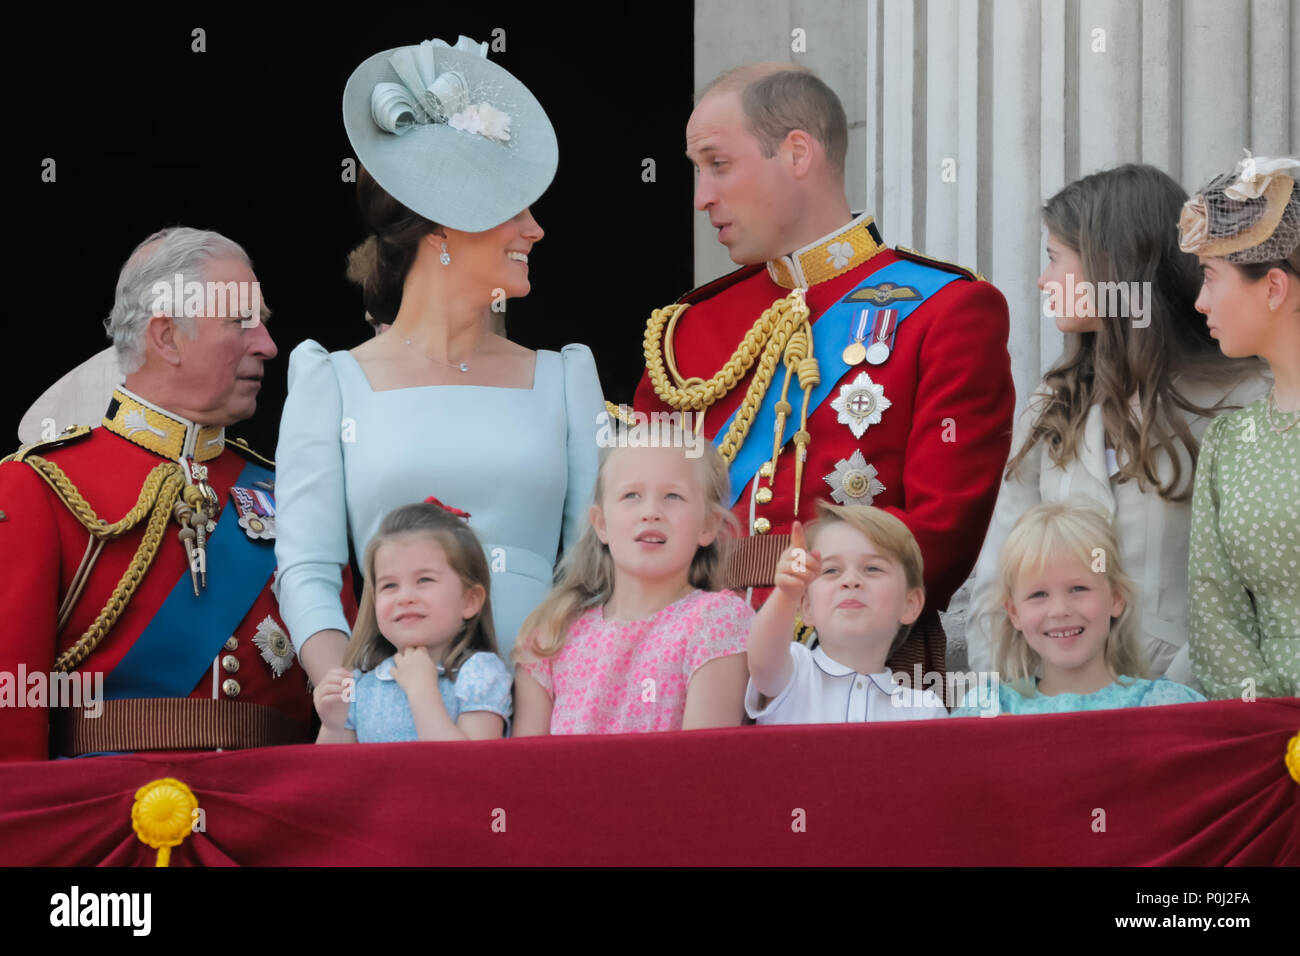 London, UK. 9th June 2018. Excited young Royals, L-R; Princess Charlotte of Cambridge, Savannah Phillips, Prince George of Cambridge and Isla Phillips enjoying the Trooping the Colour fly-past from the Buckingham Palace balcony. Credit: amanda rose/Alamy Live News - Stock Image